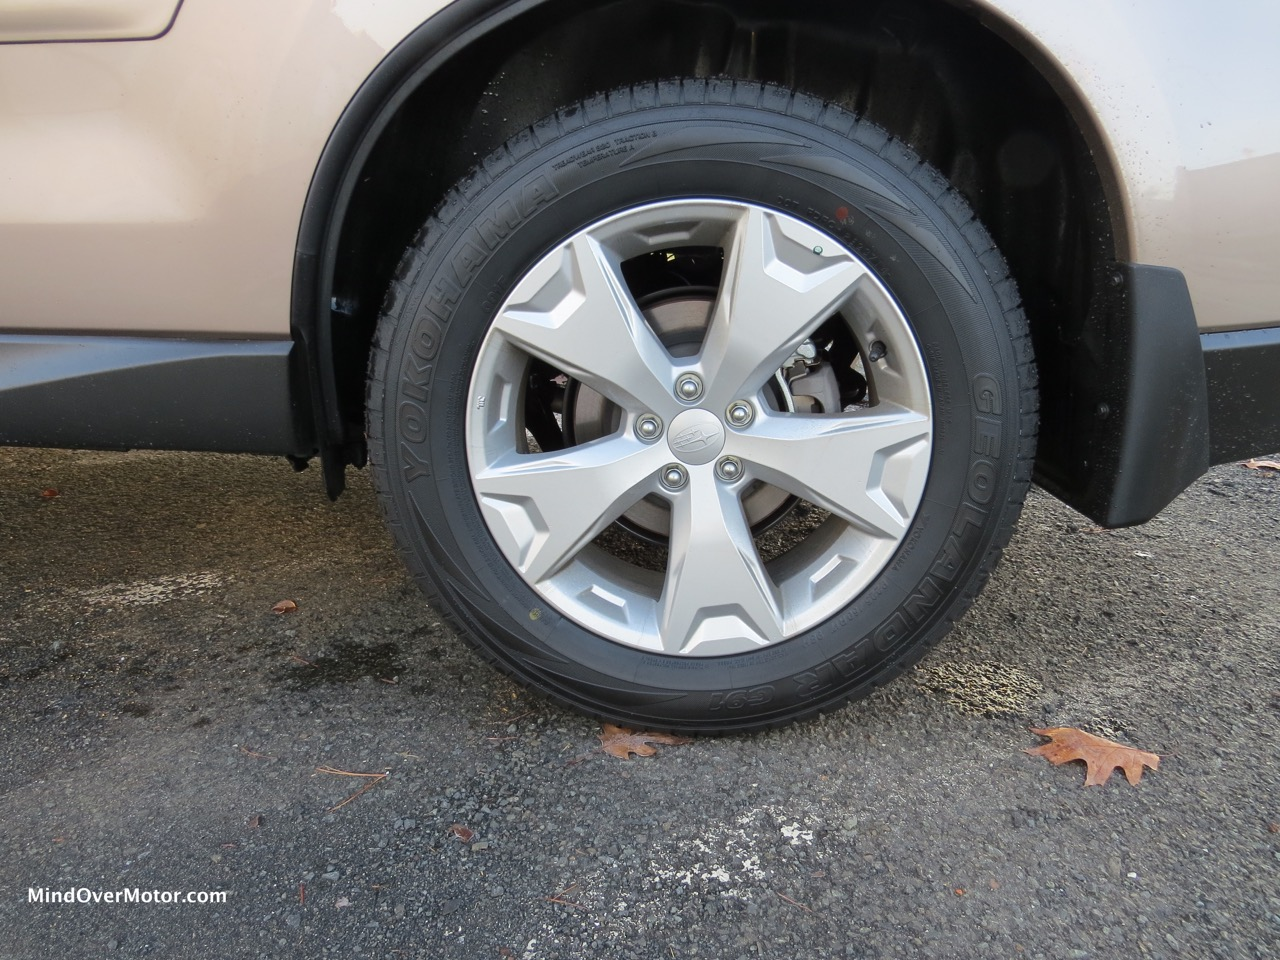 2015 Subaru Forester Wheel